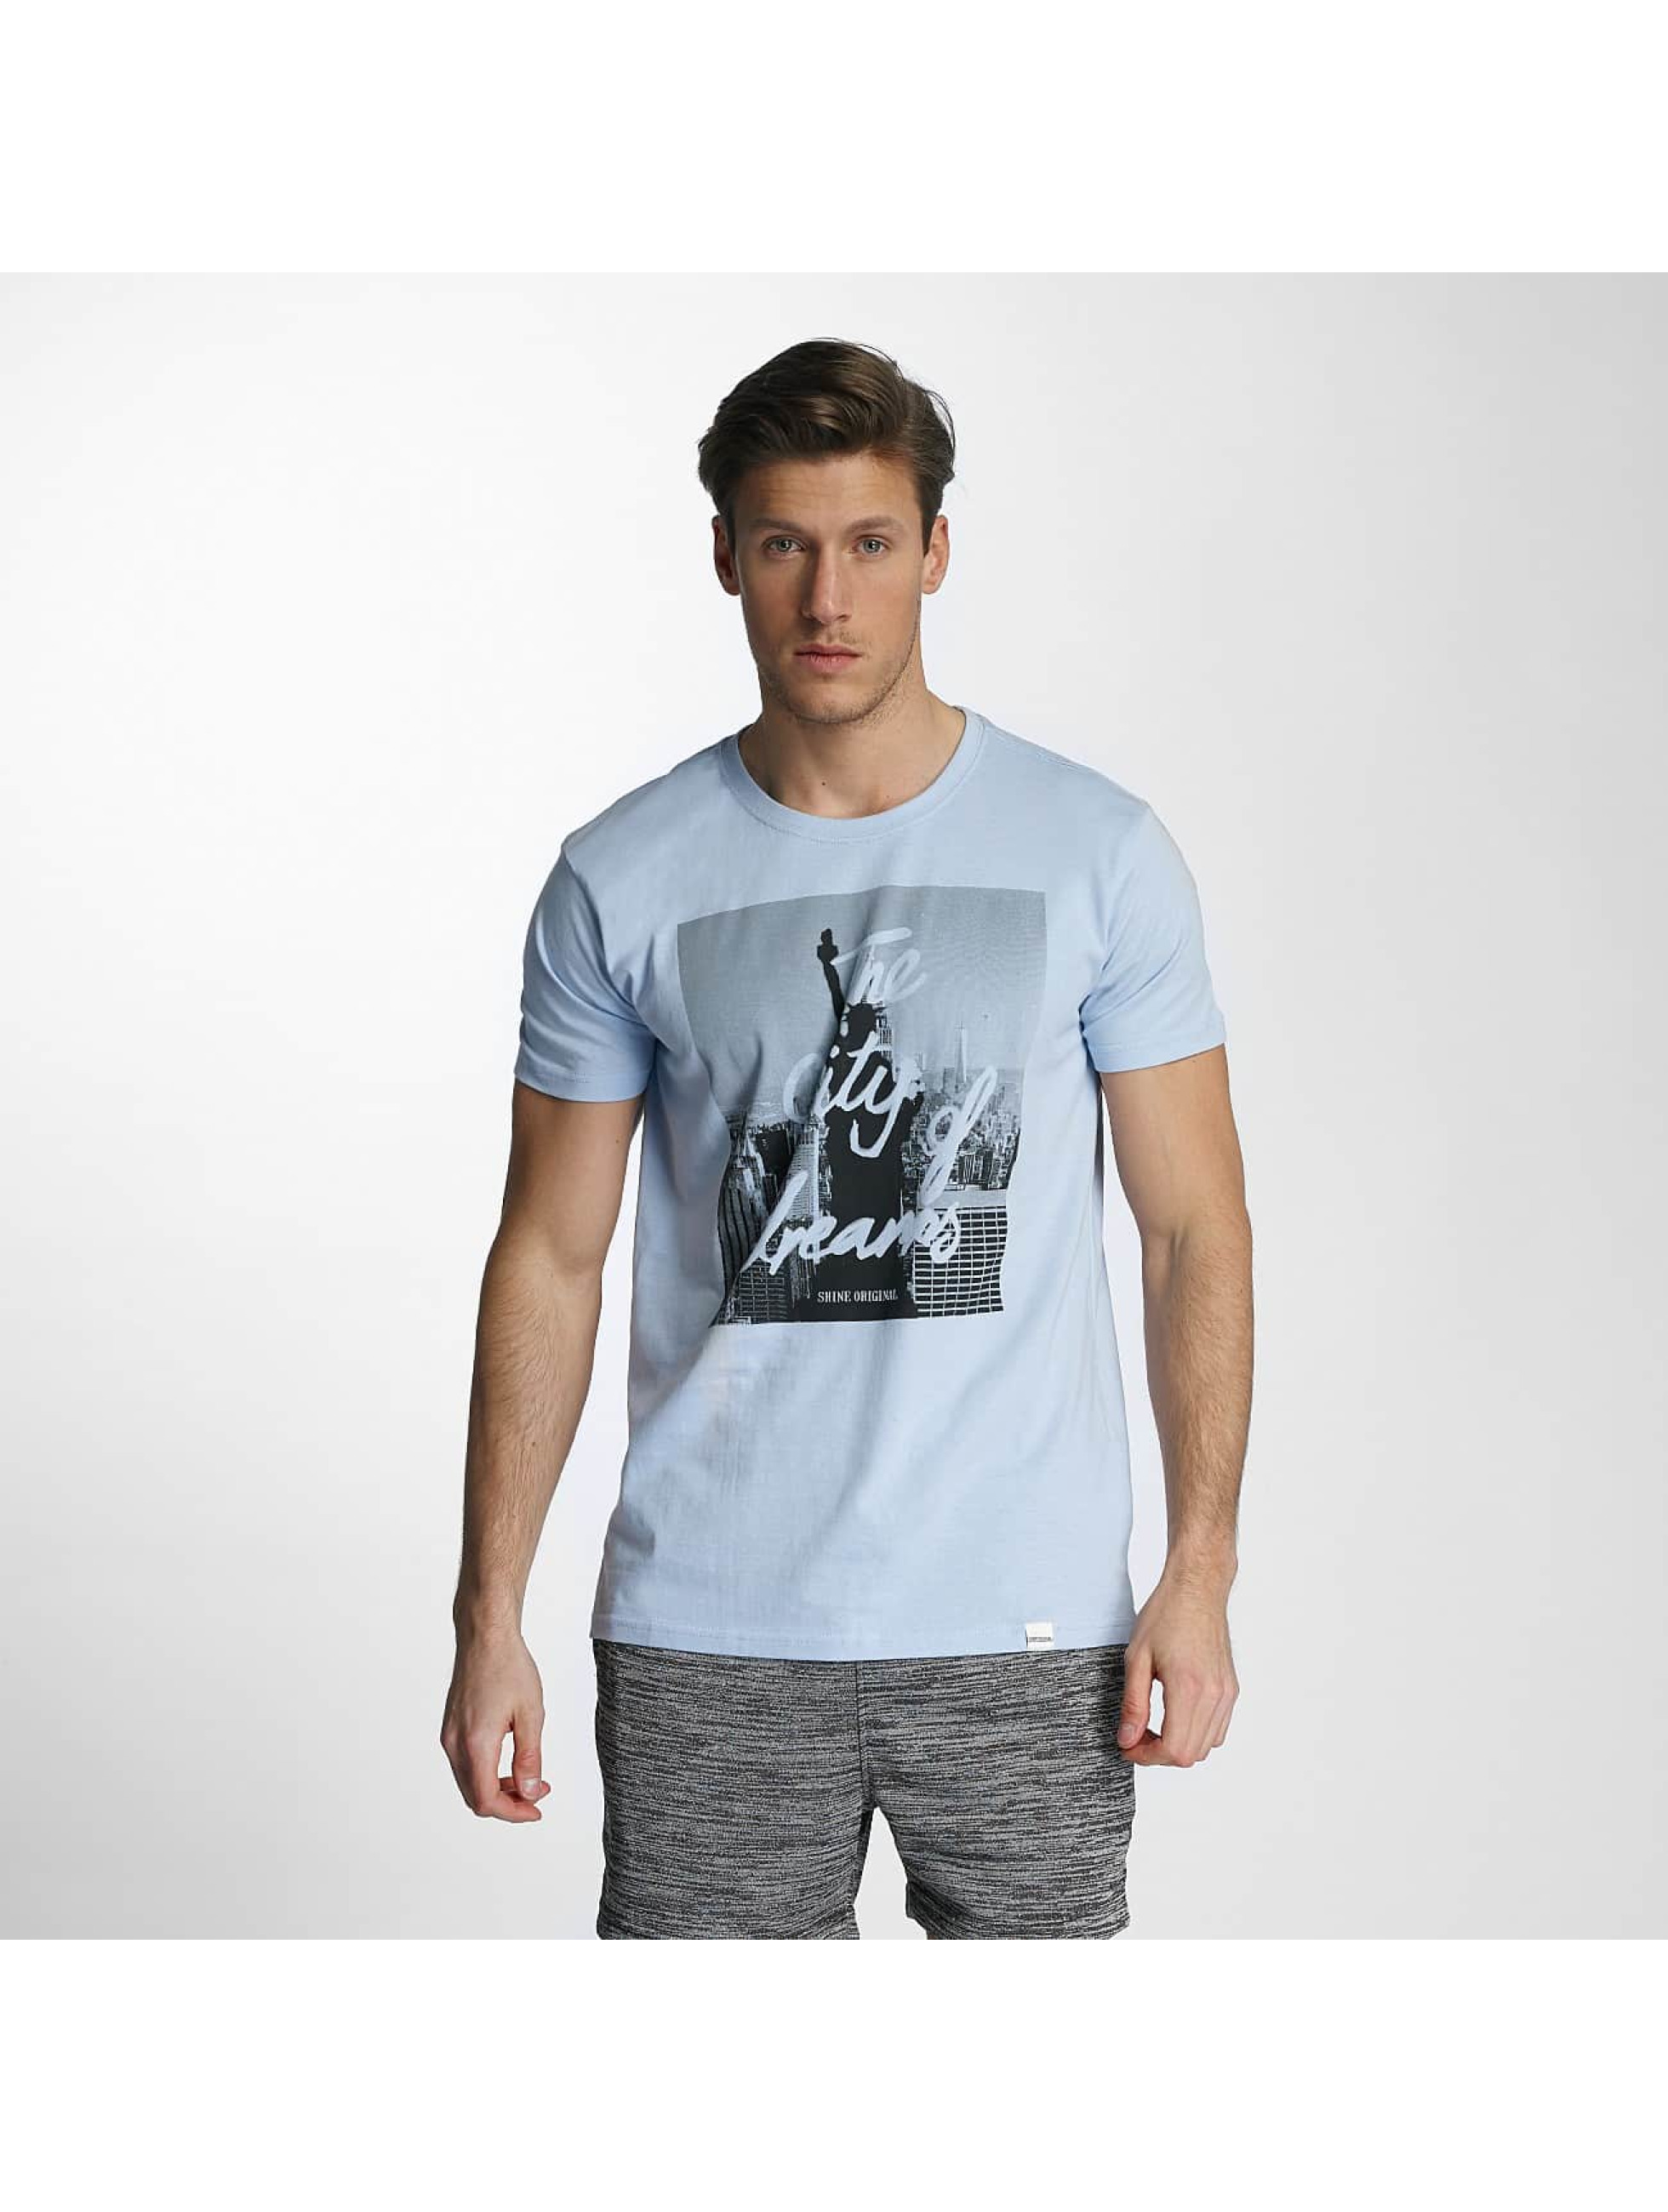 SHINE Original t-shirt City Lane blauw